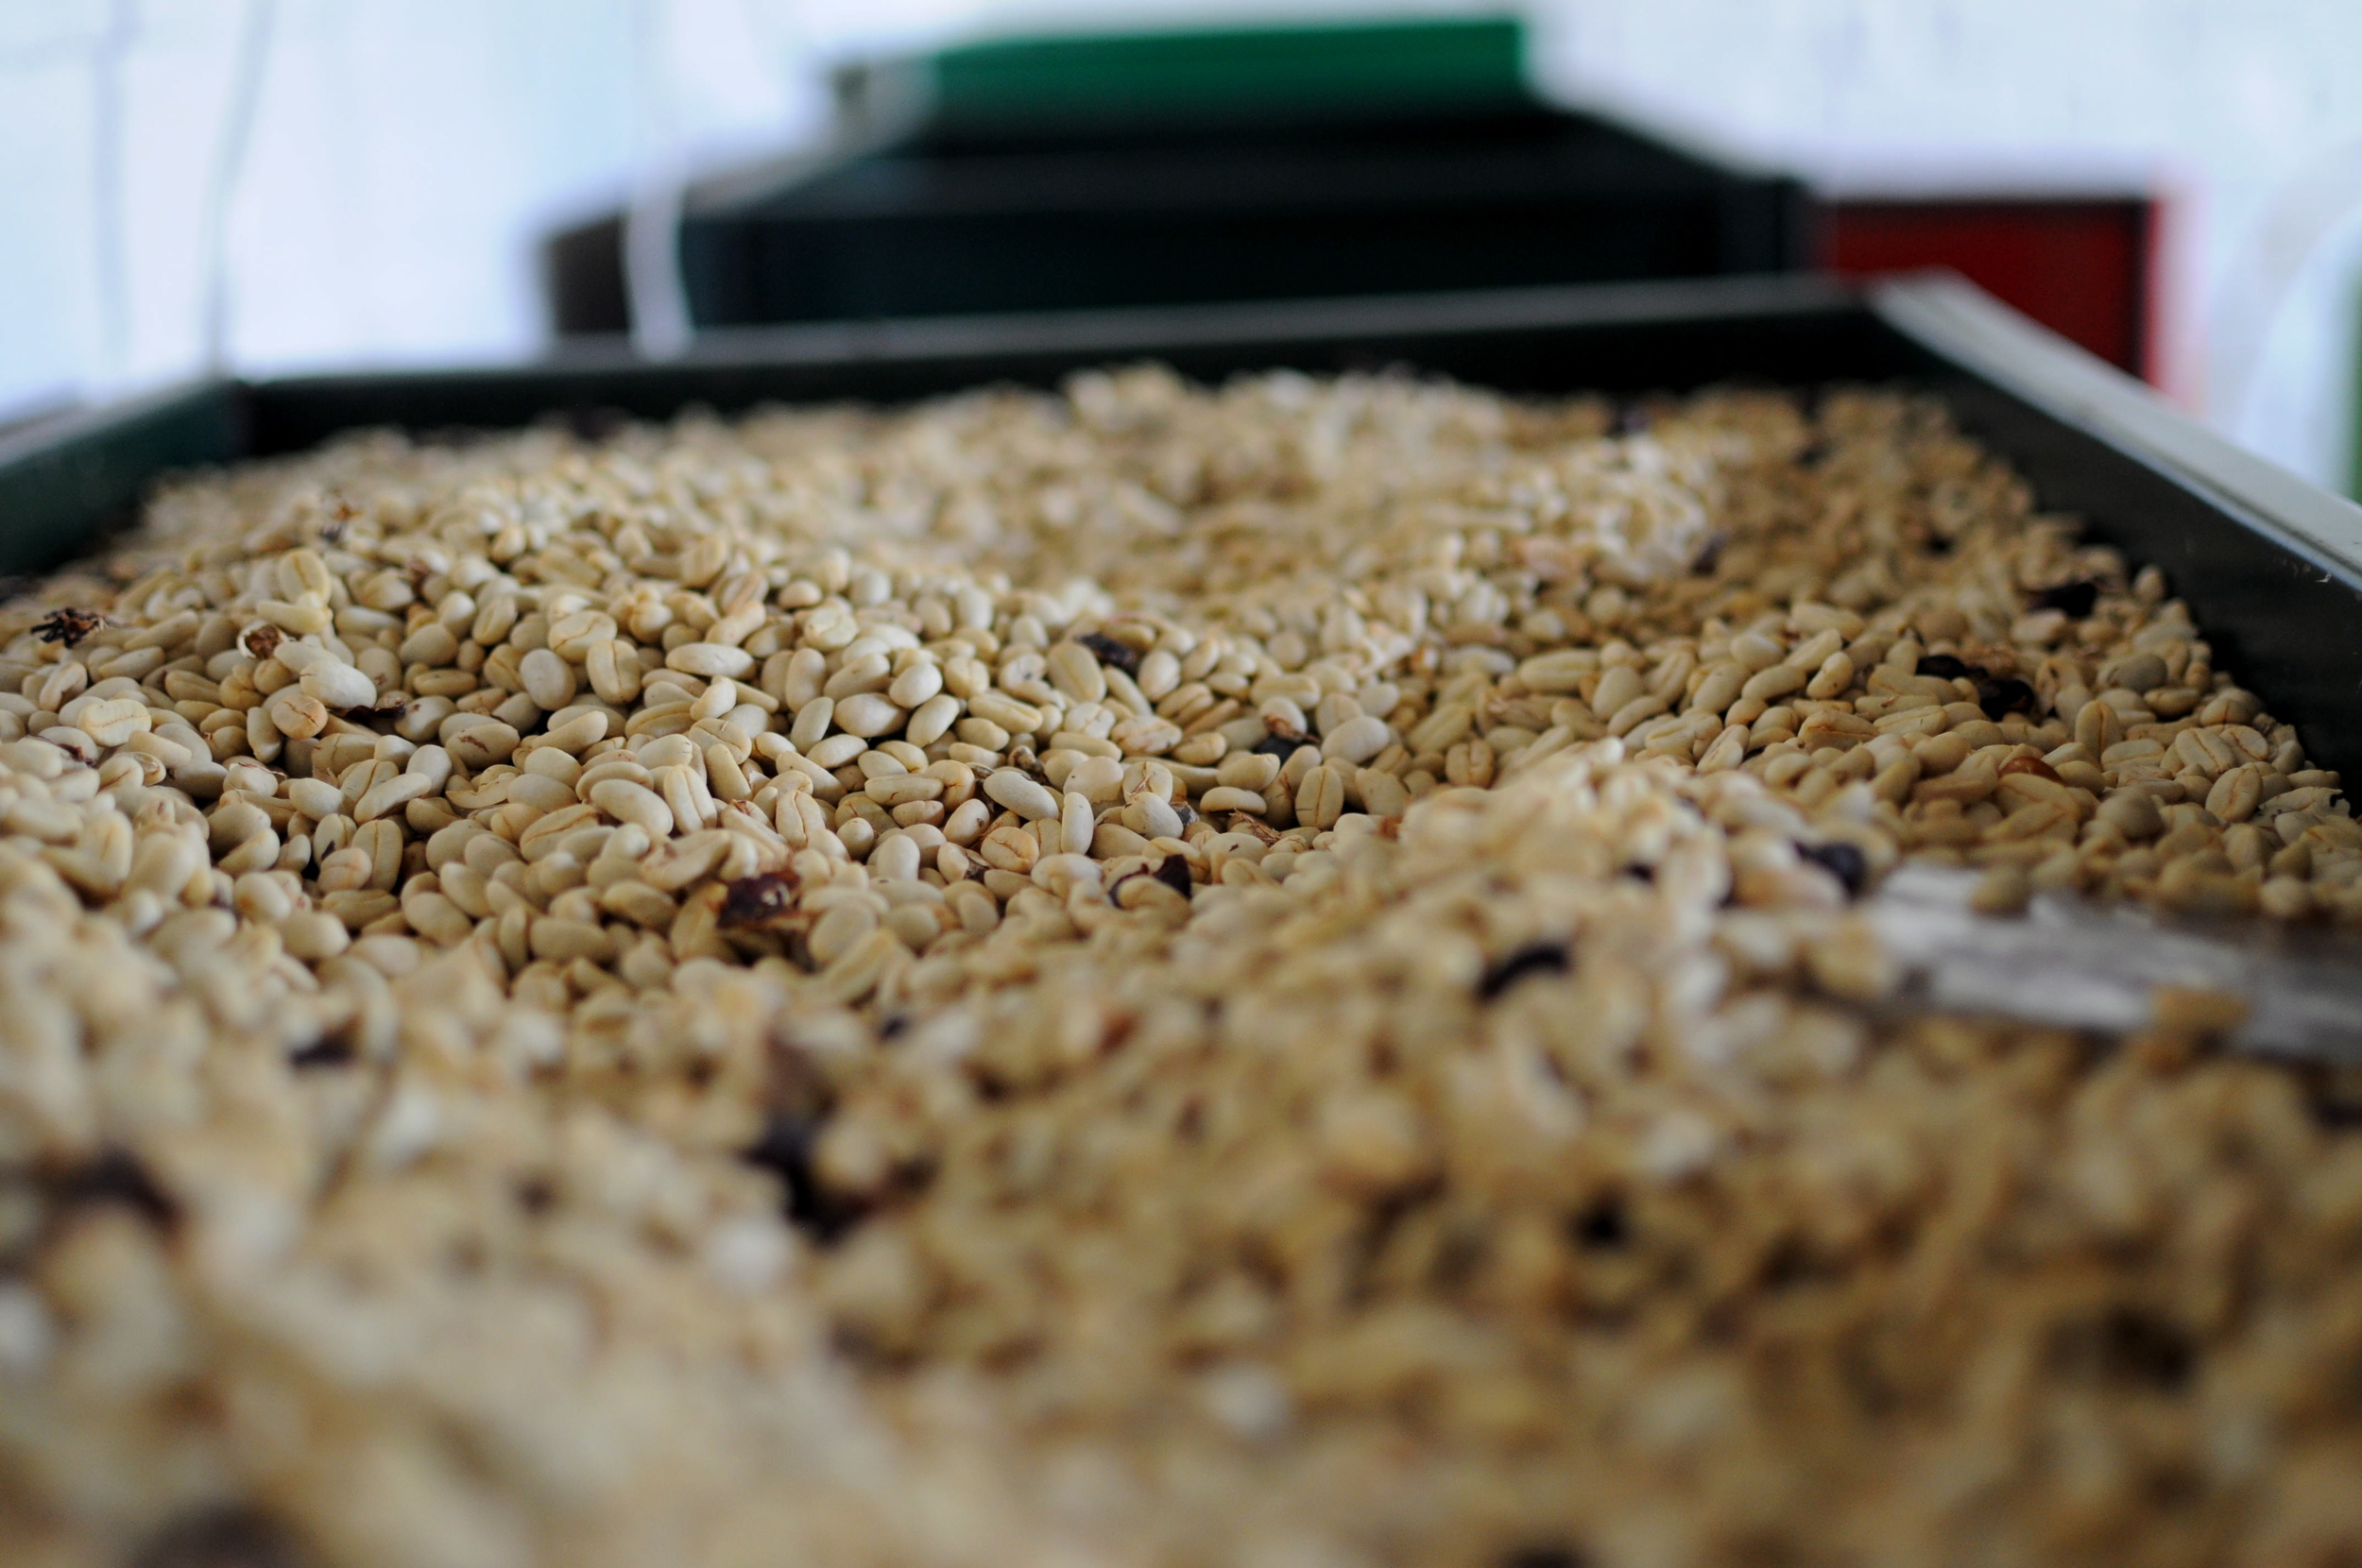 Some coffees are mechanically dried in silos fueled by milled parchment.